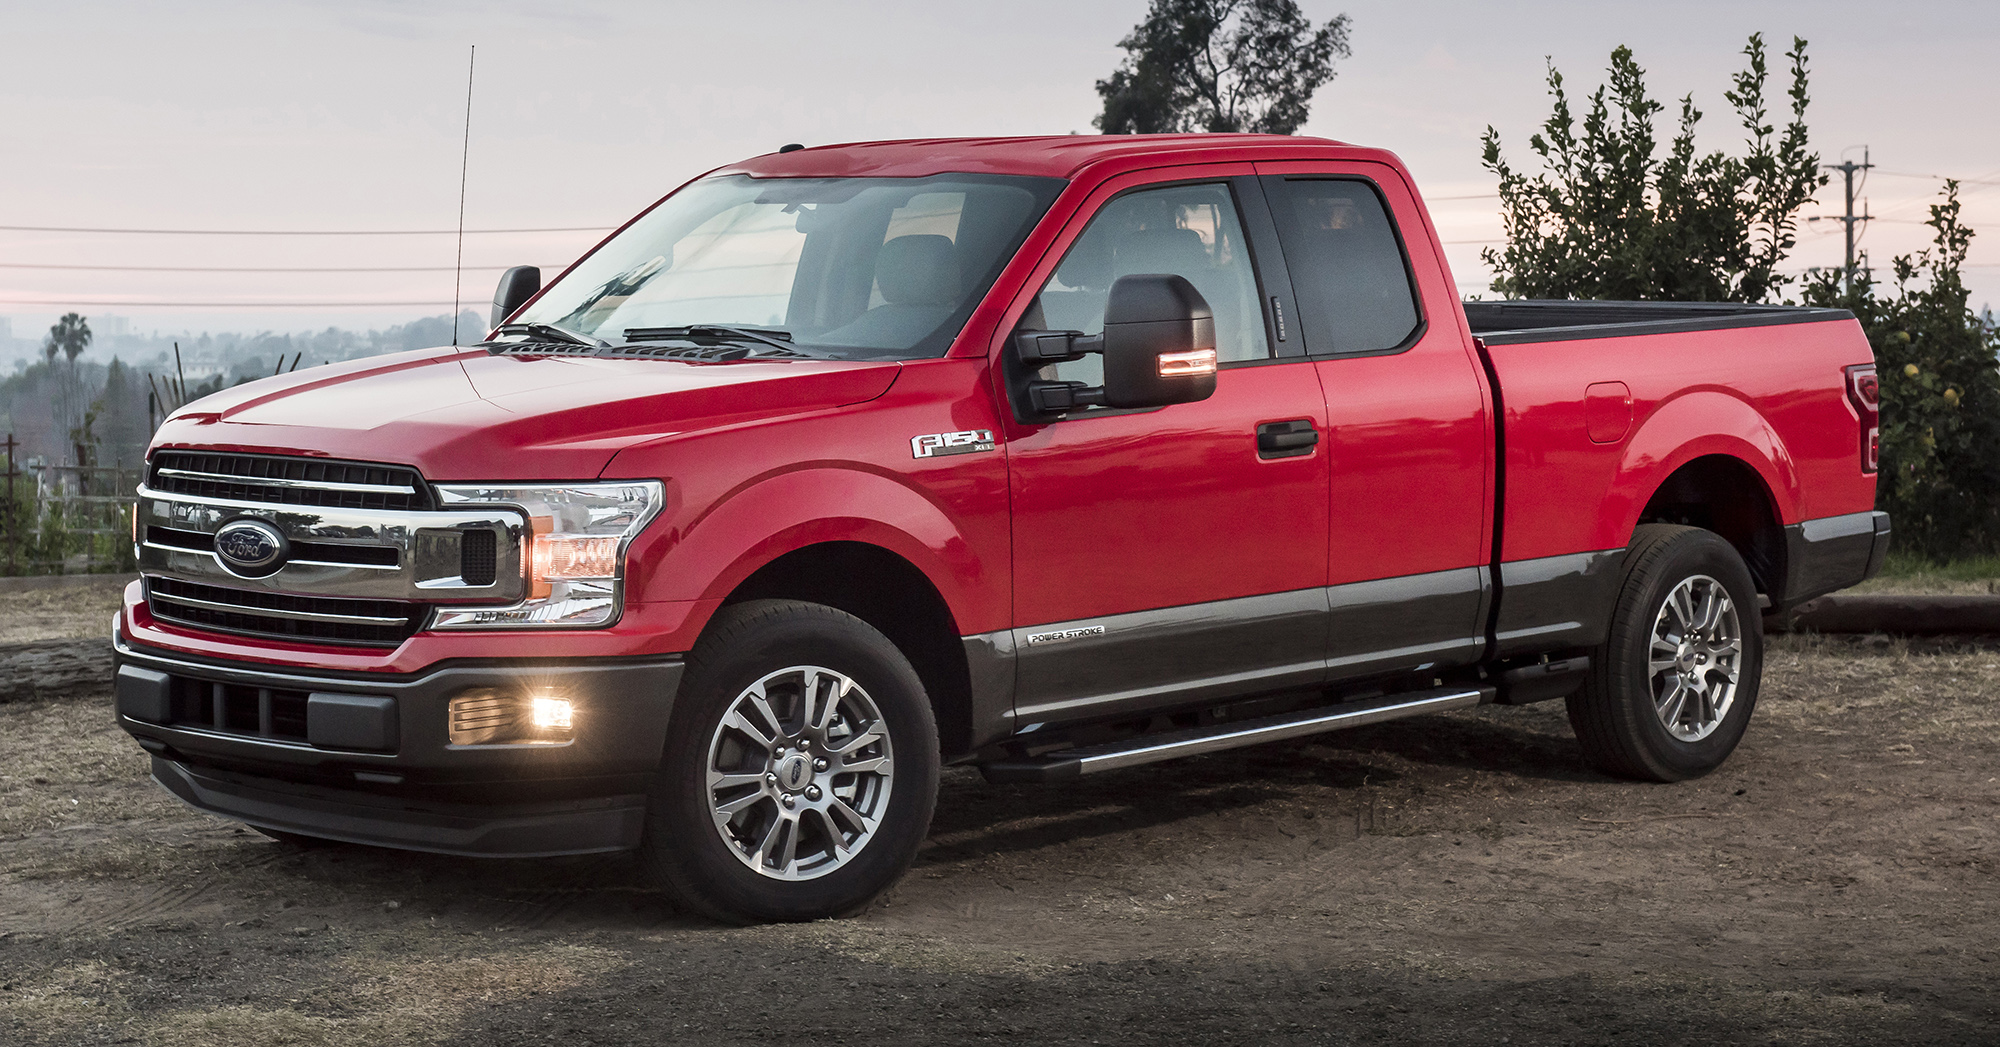 ford f 150 receives power stroke 3 0 litre diesel engine 250 hp 597 nm 5 7 tonne towing capacity. Black Bedroom Furniture Sets. Home Design Ideas